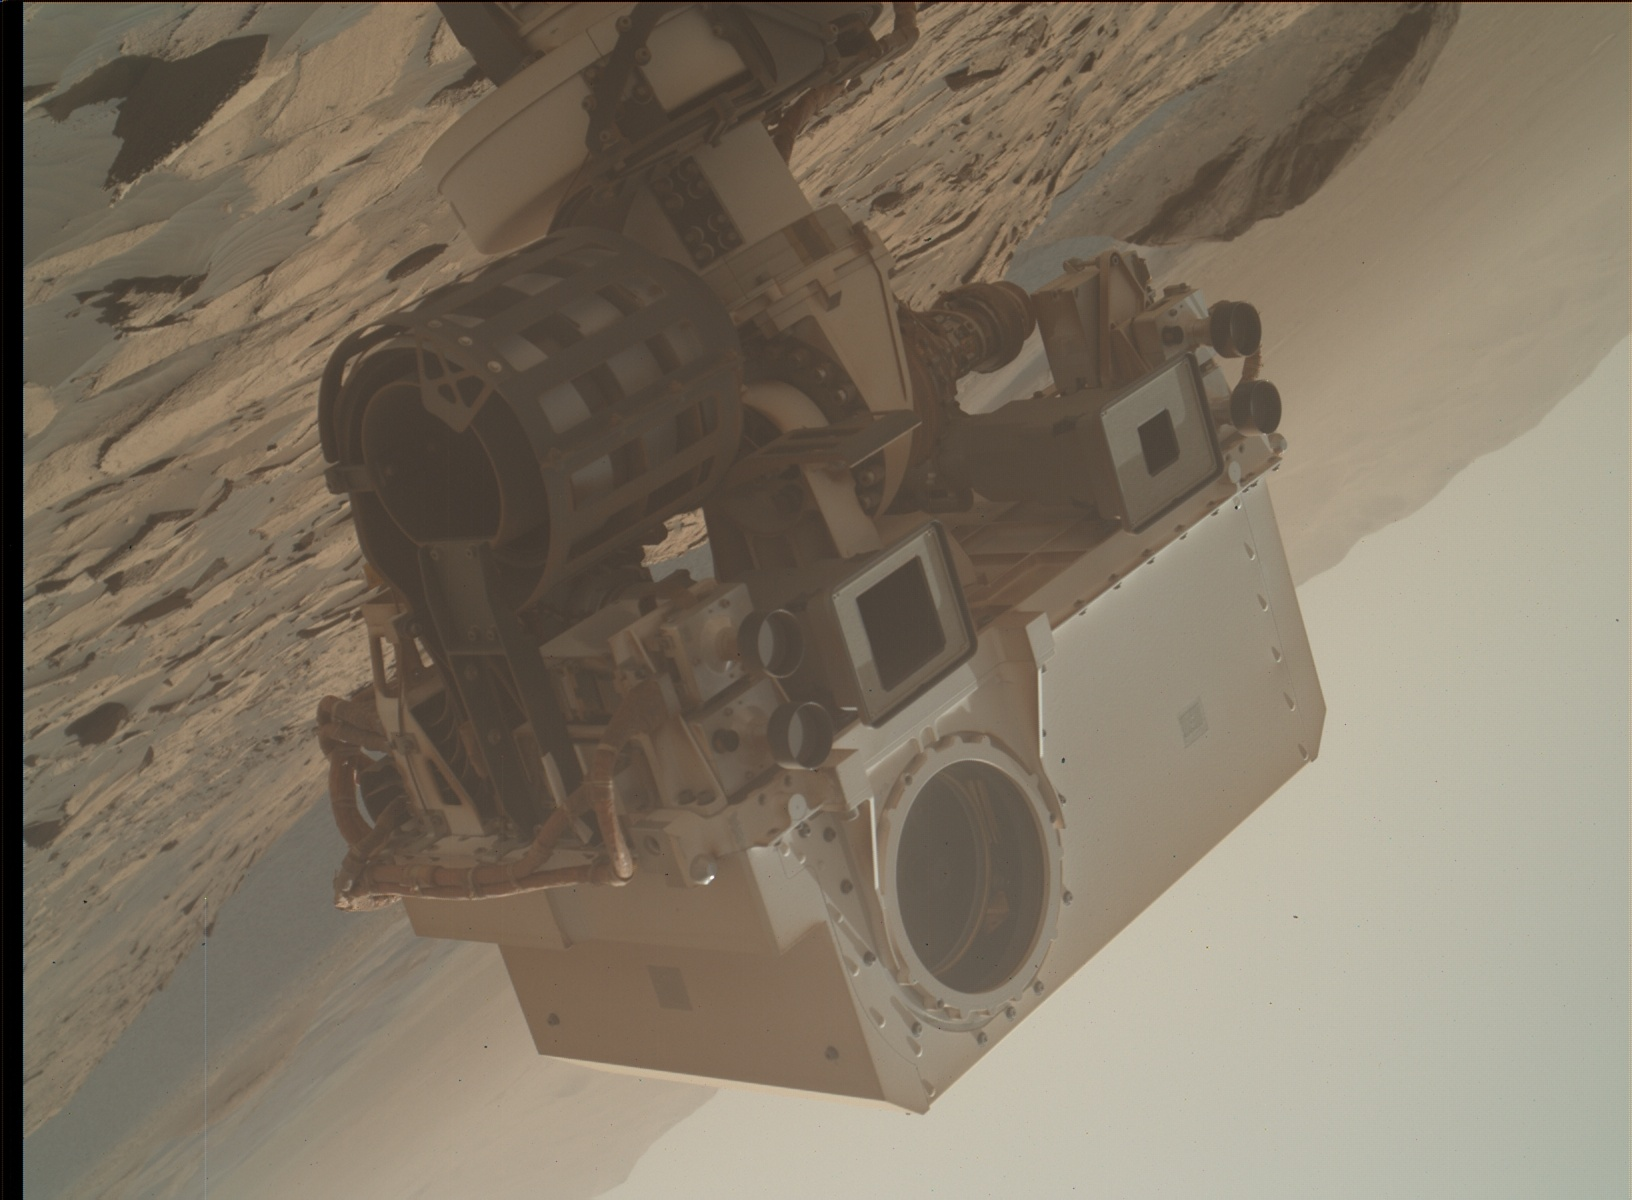 Nasa's Mars rover Curiosity acquired this image using its Mars Hand Lens Imager (MAHLI) on Sol 3215